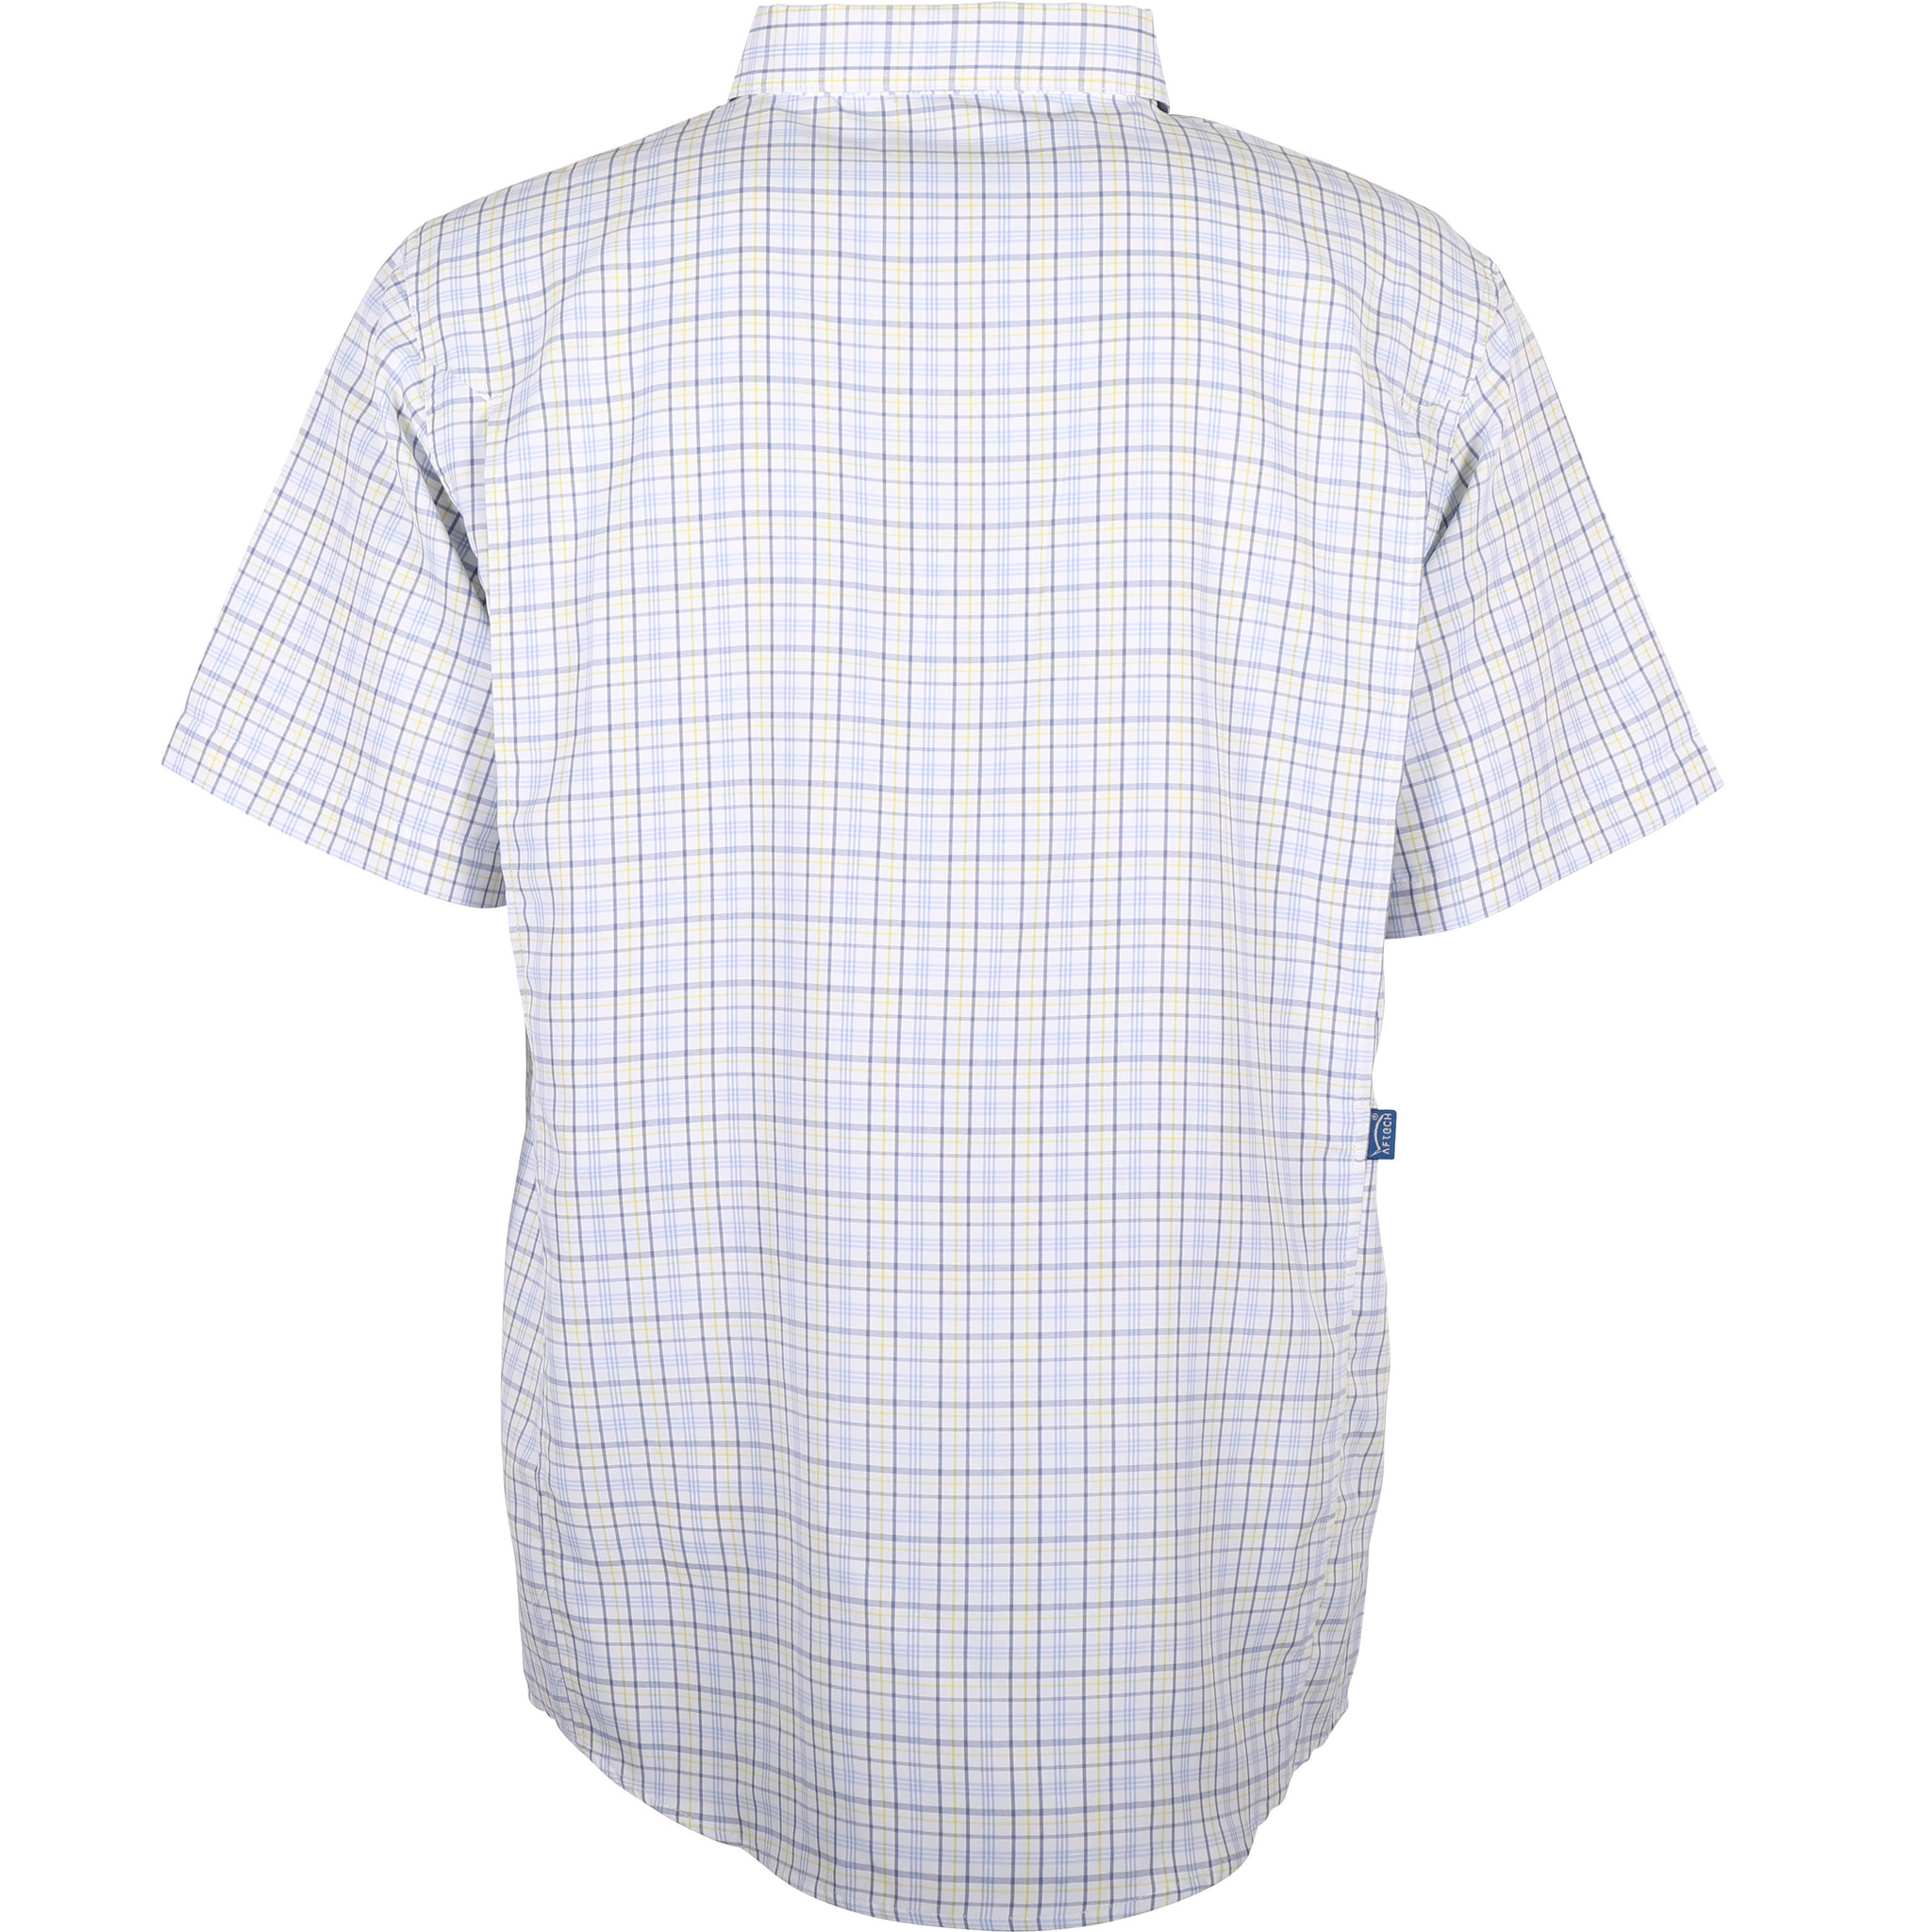 AFTCO AFTCO Intersection Short Sleeve Botton Down Shirt